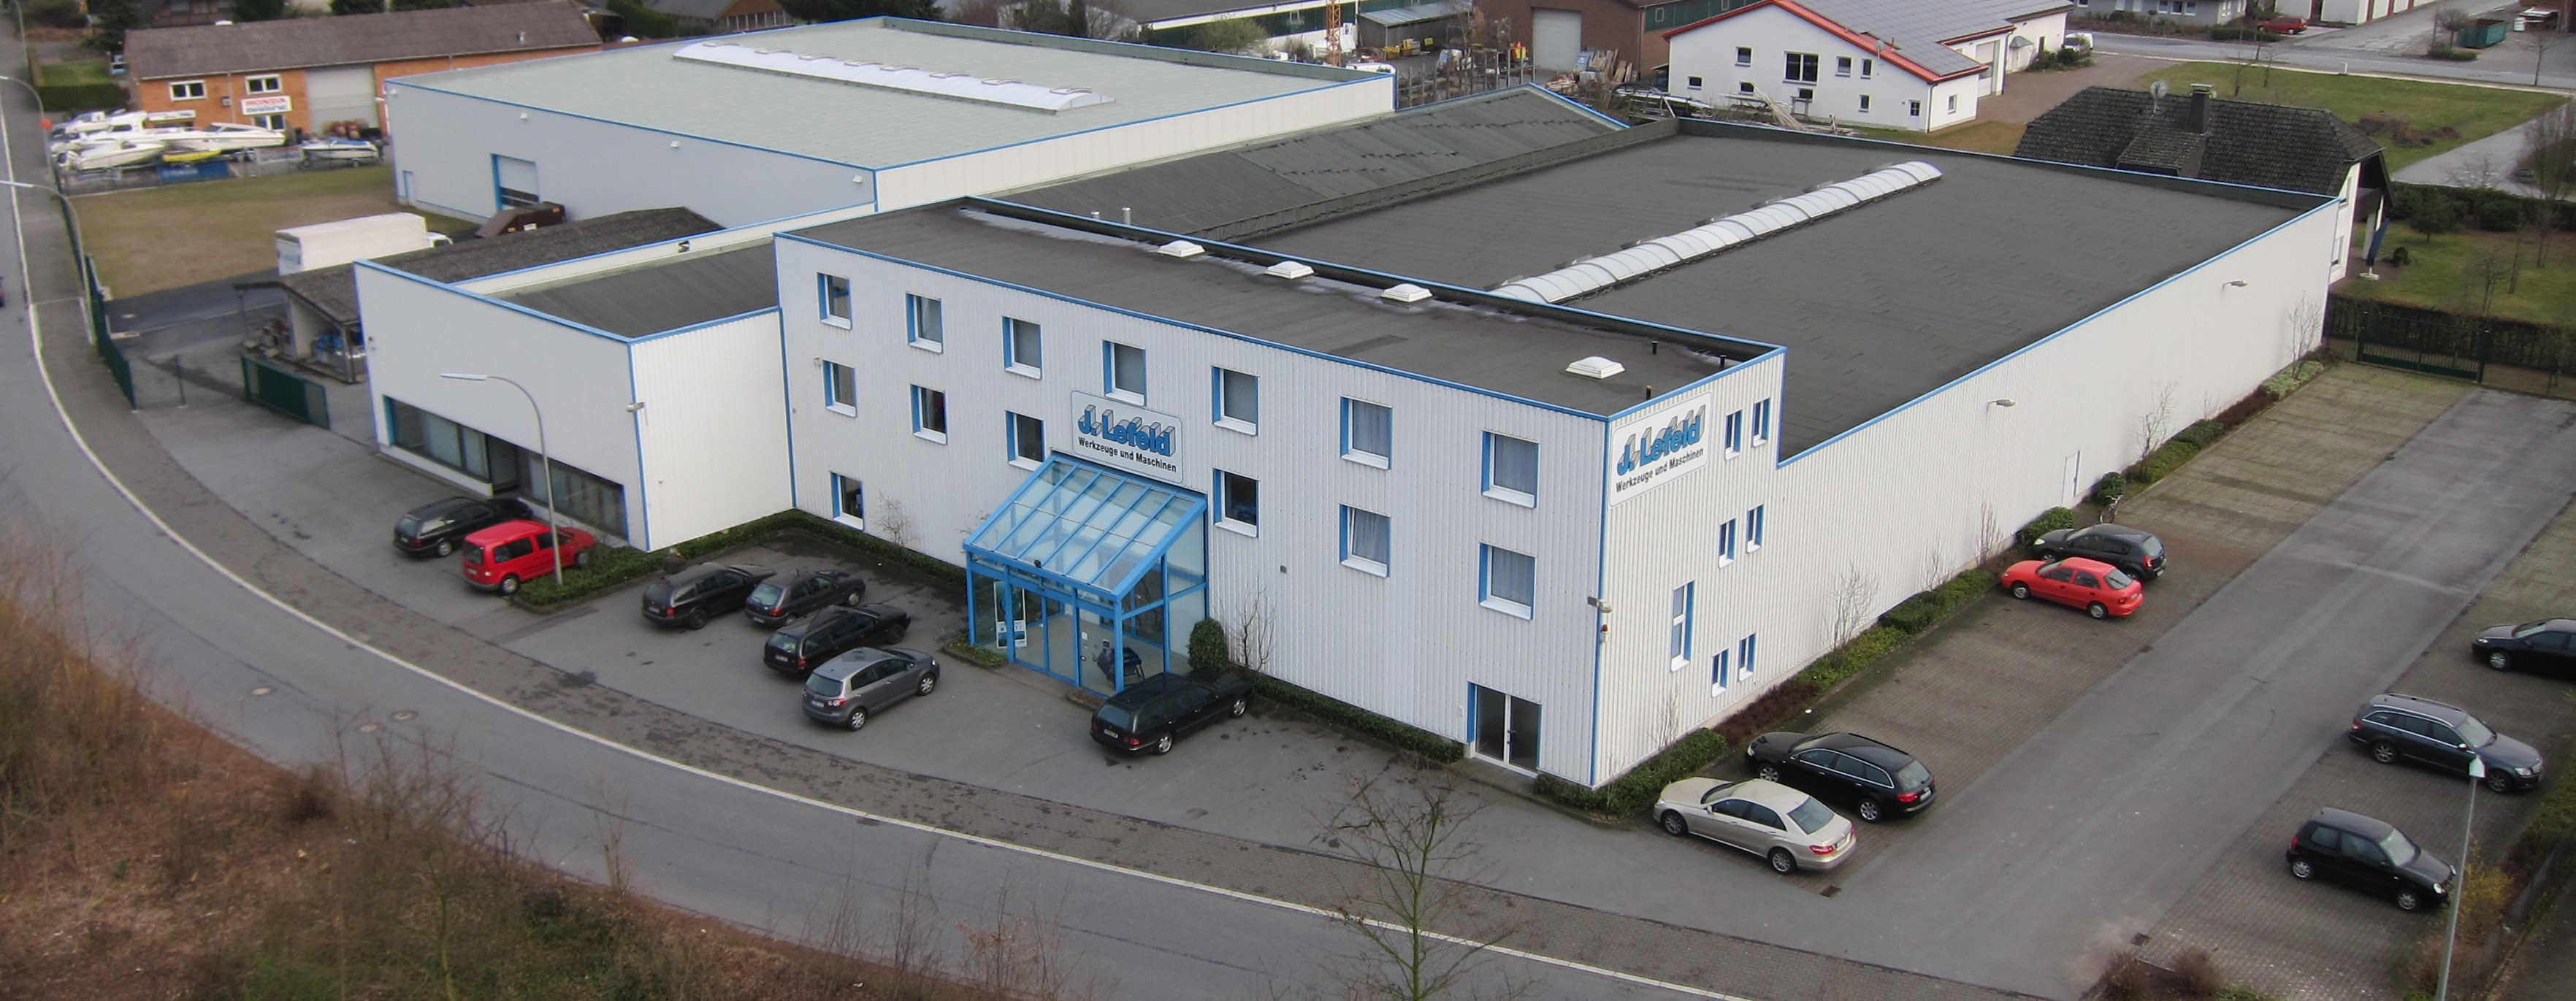 2011 Logistikzentrum